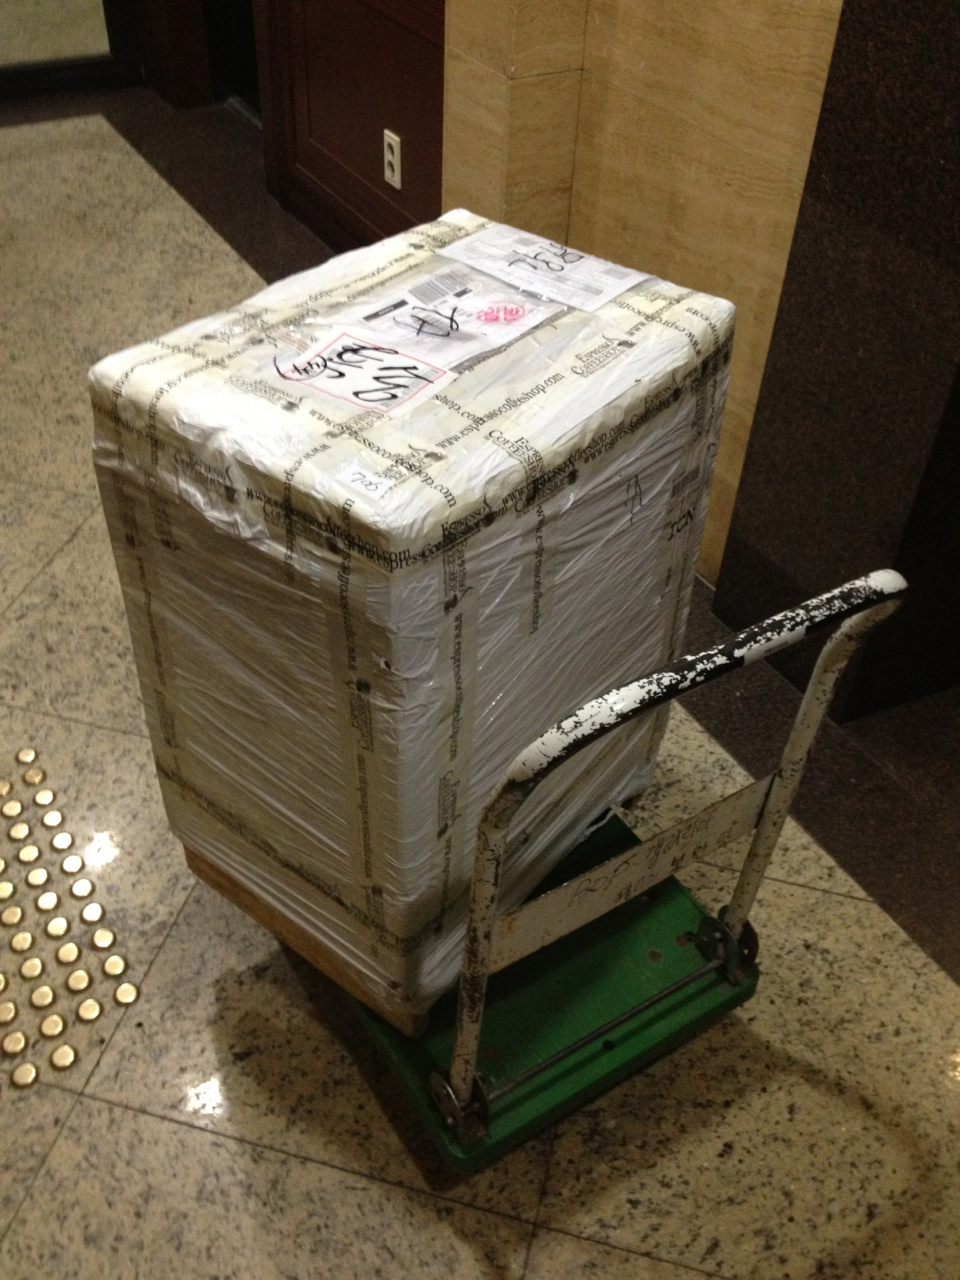 The shipment arrived in a crated double box weighing easily 30kg. Cart required!